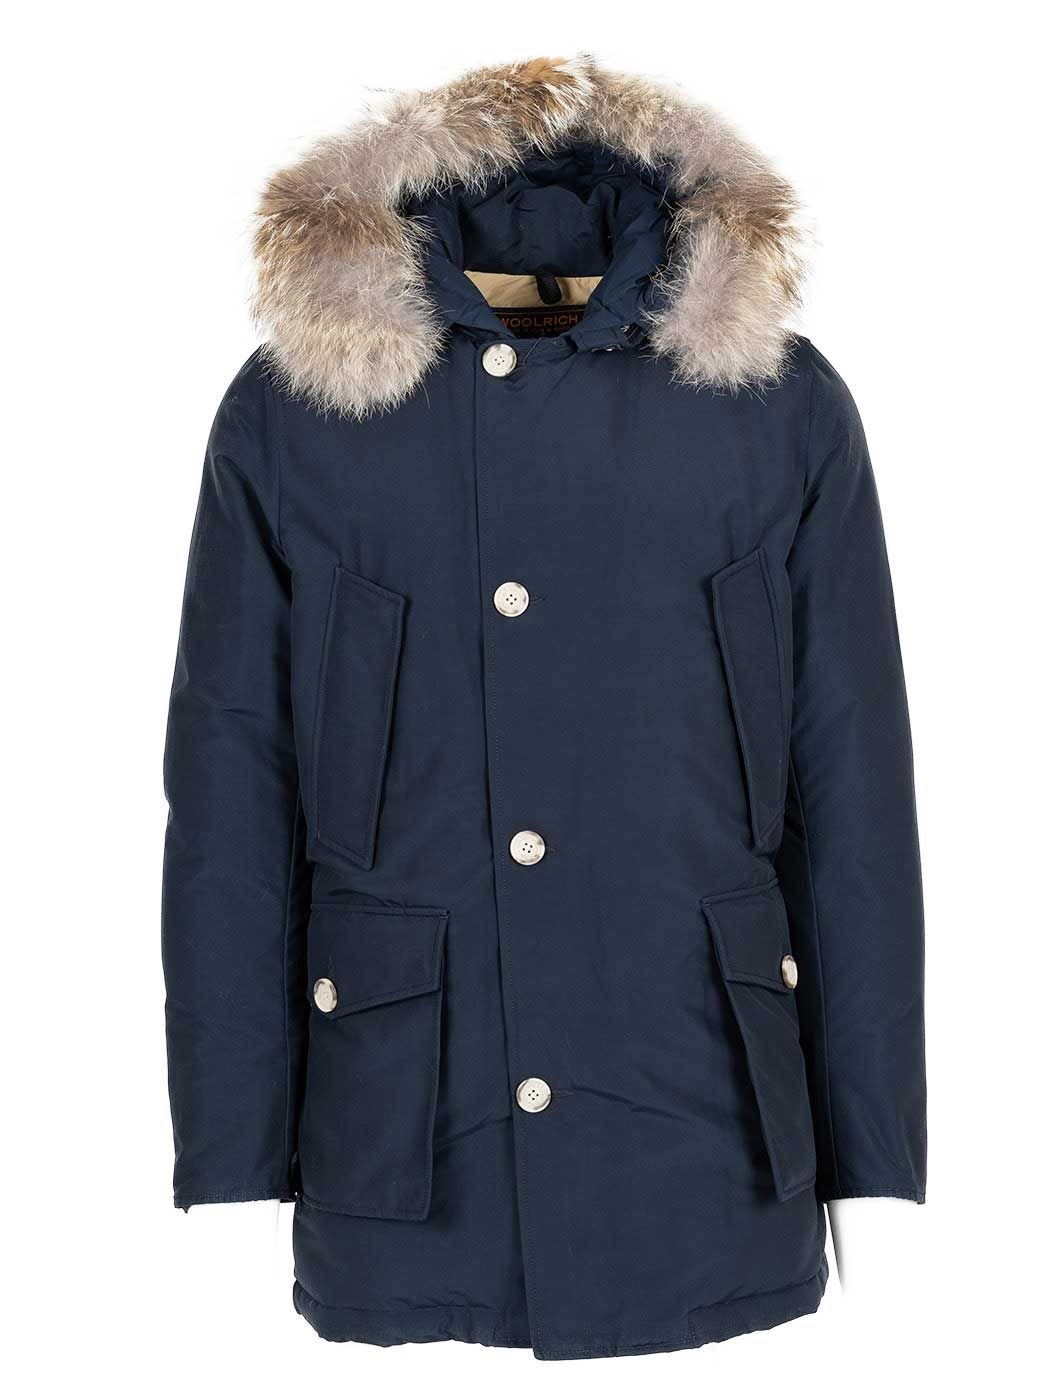 WOOLRICH WOCPS1674 MLB. GIACCONE